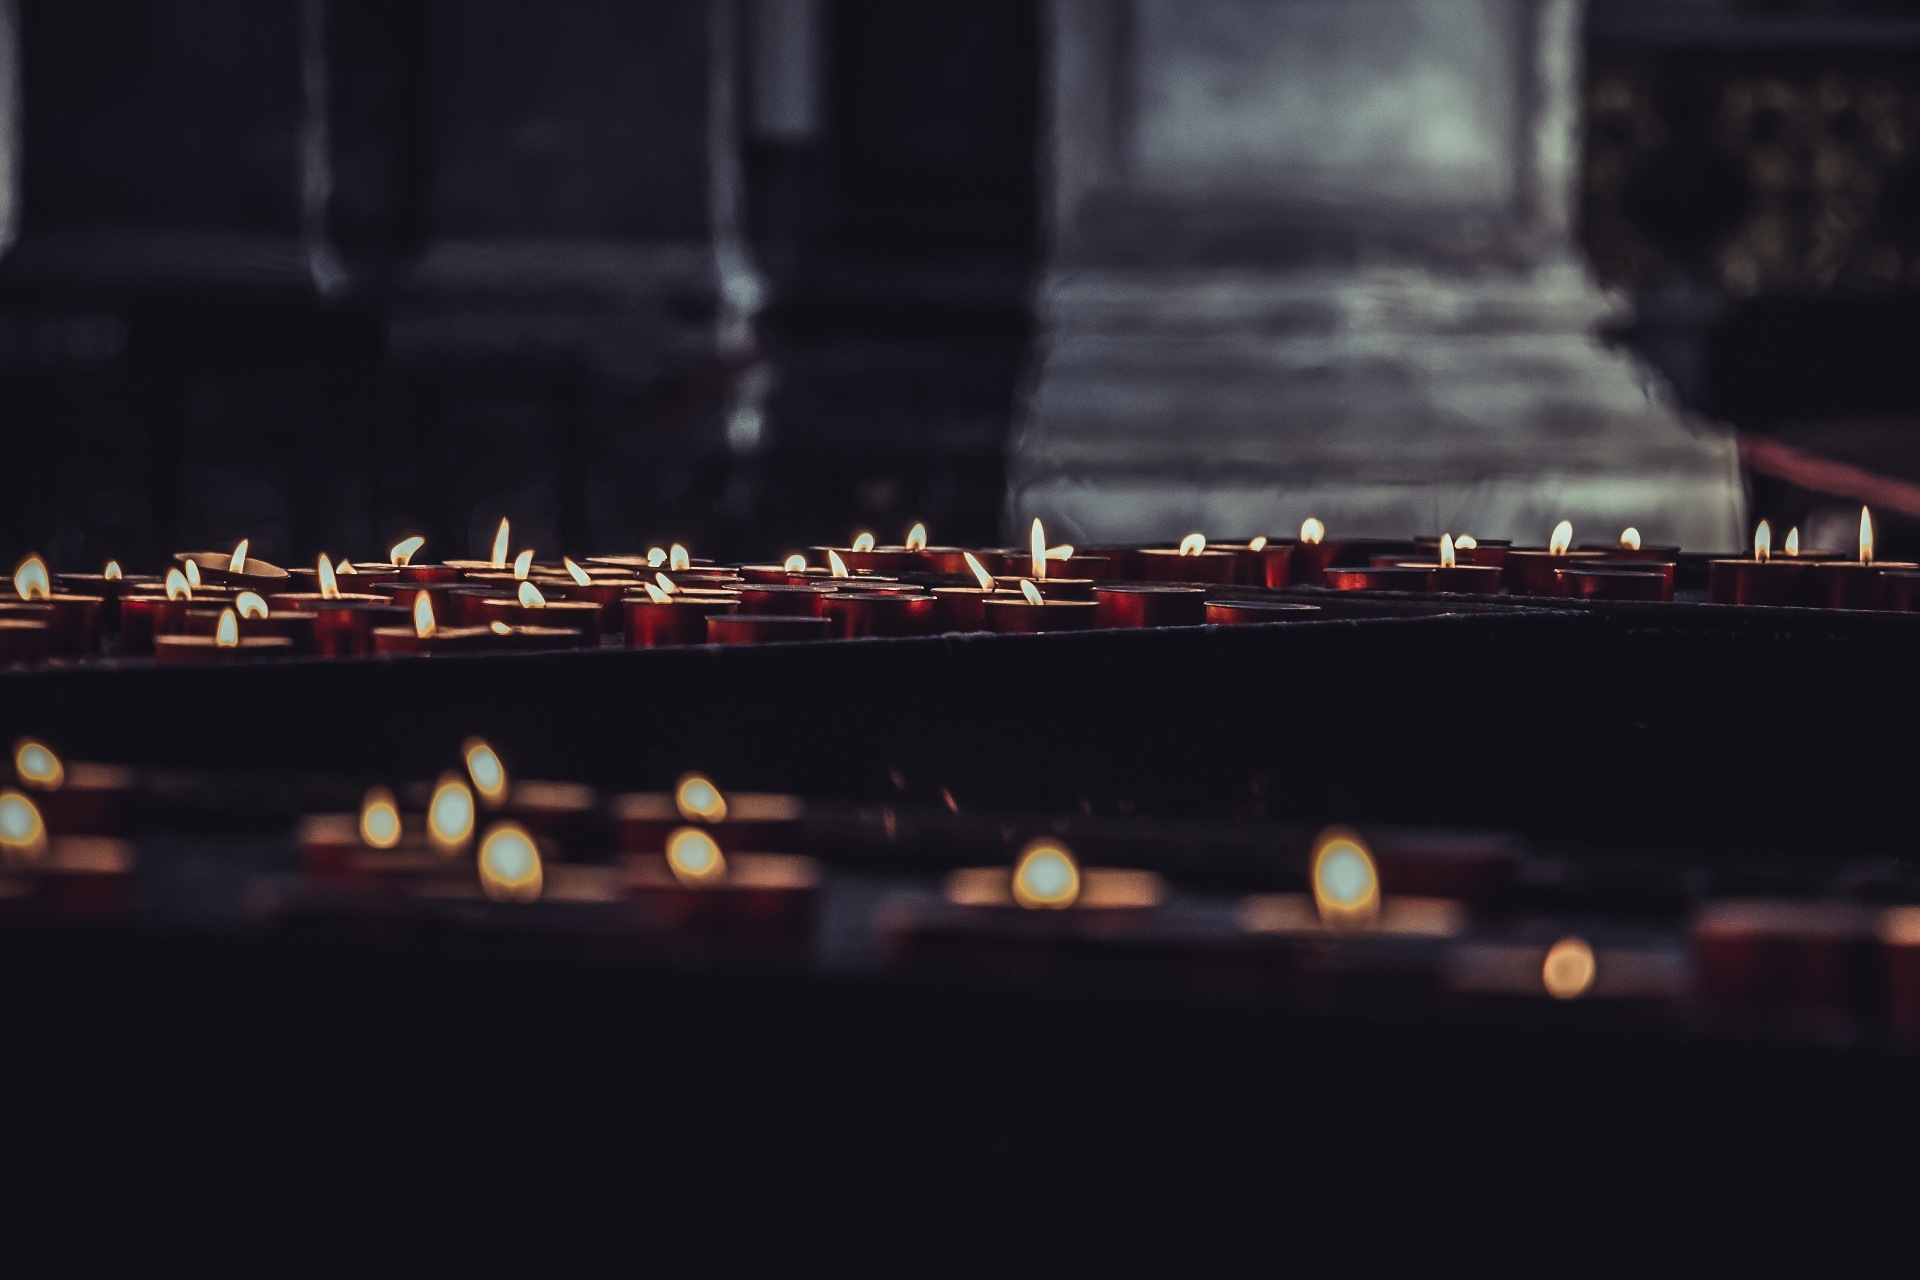 Candles in church by Phantography